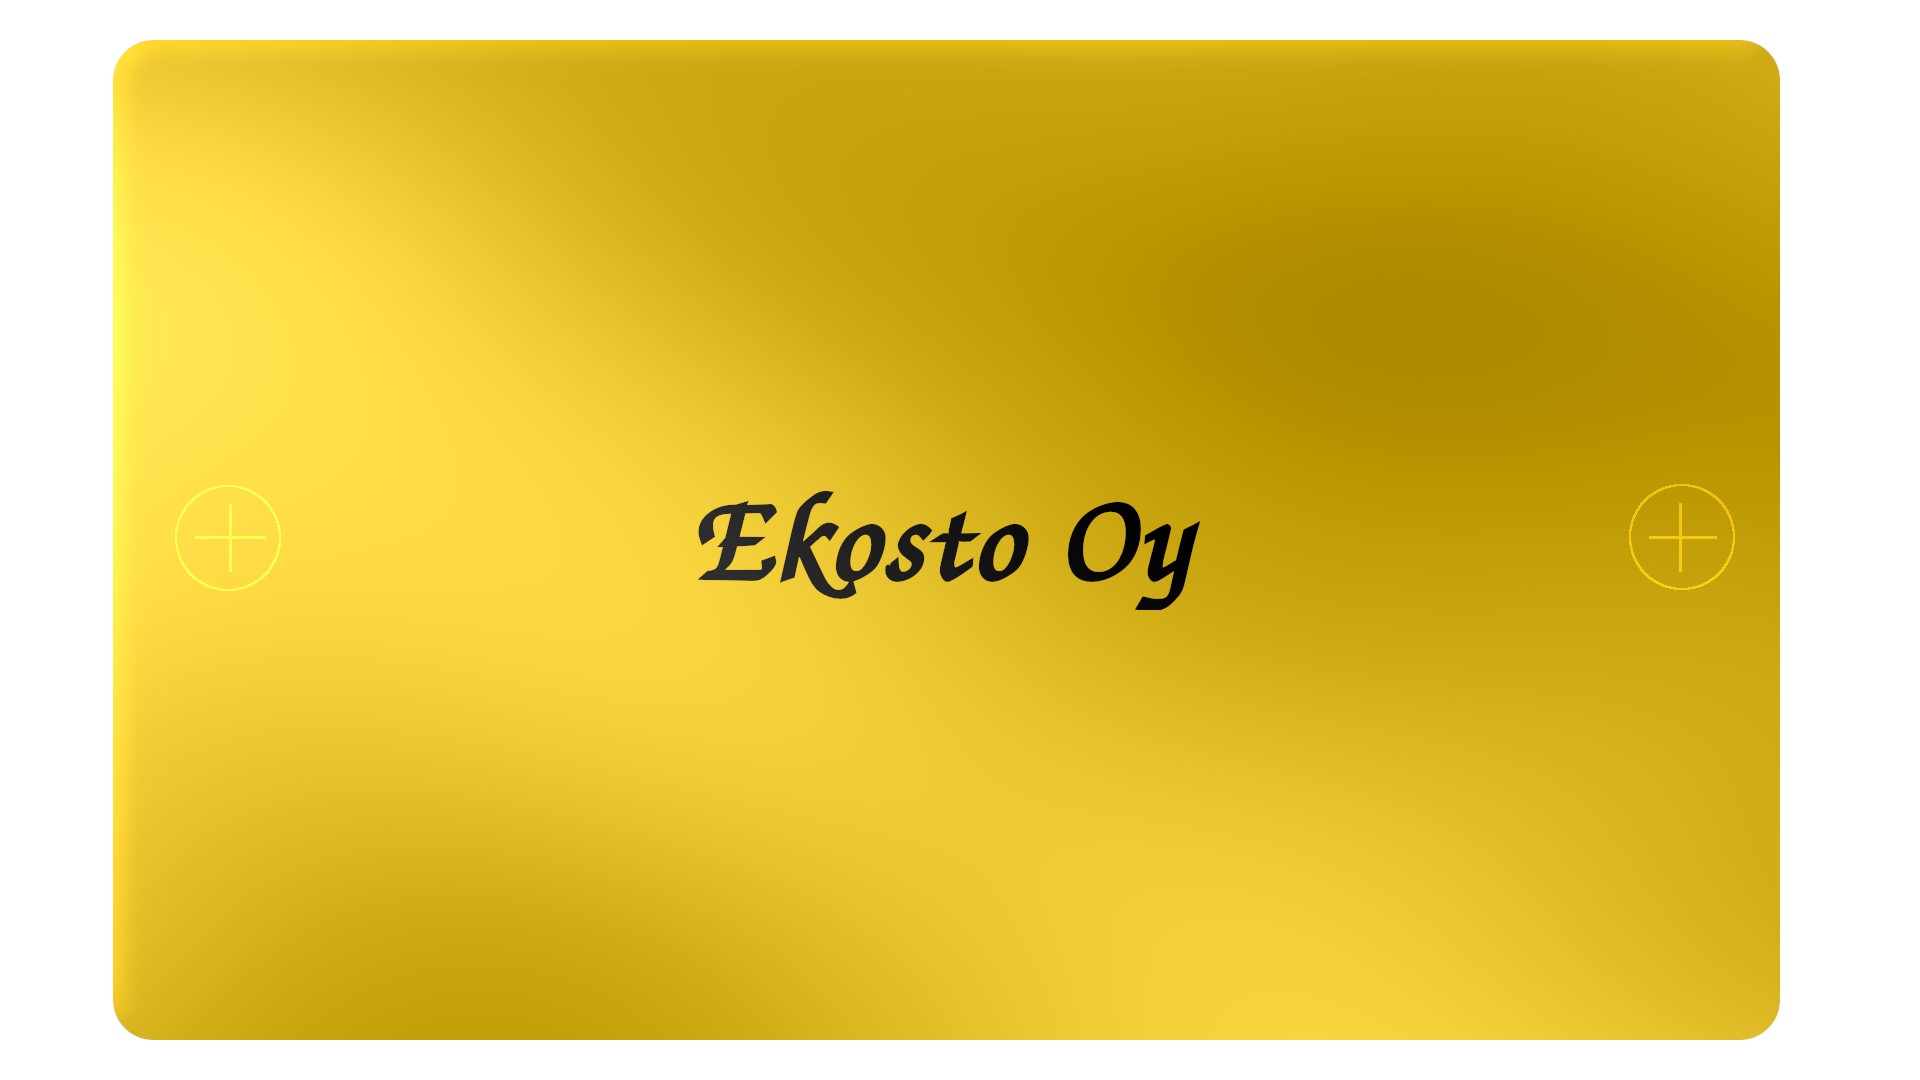 plate_Ekosto Oy.png